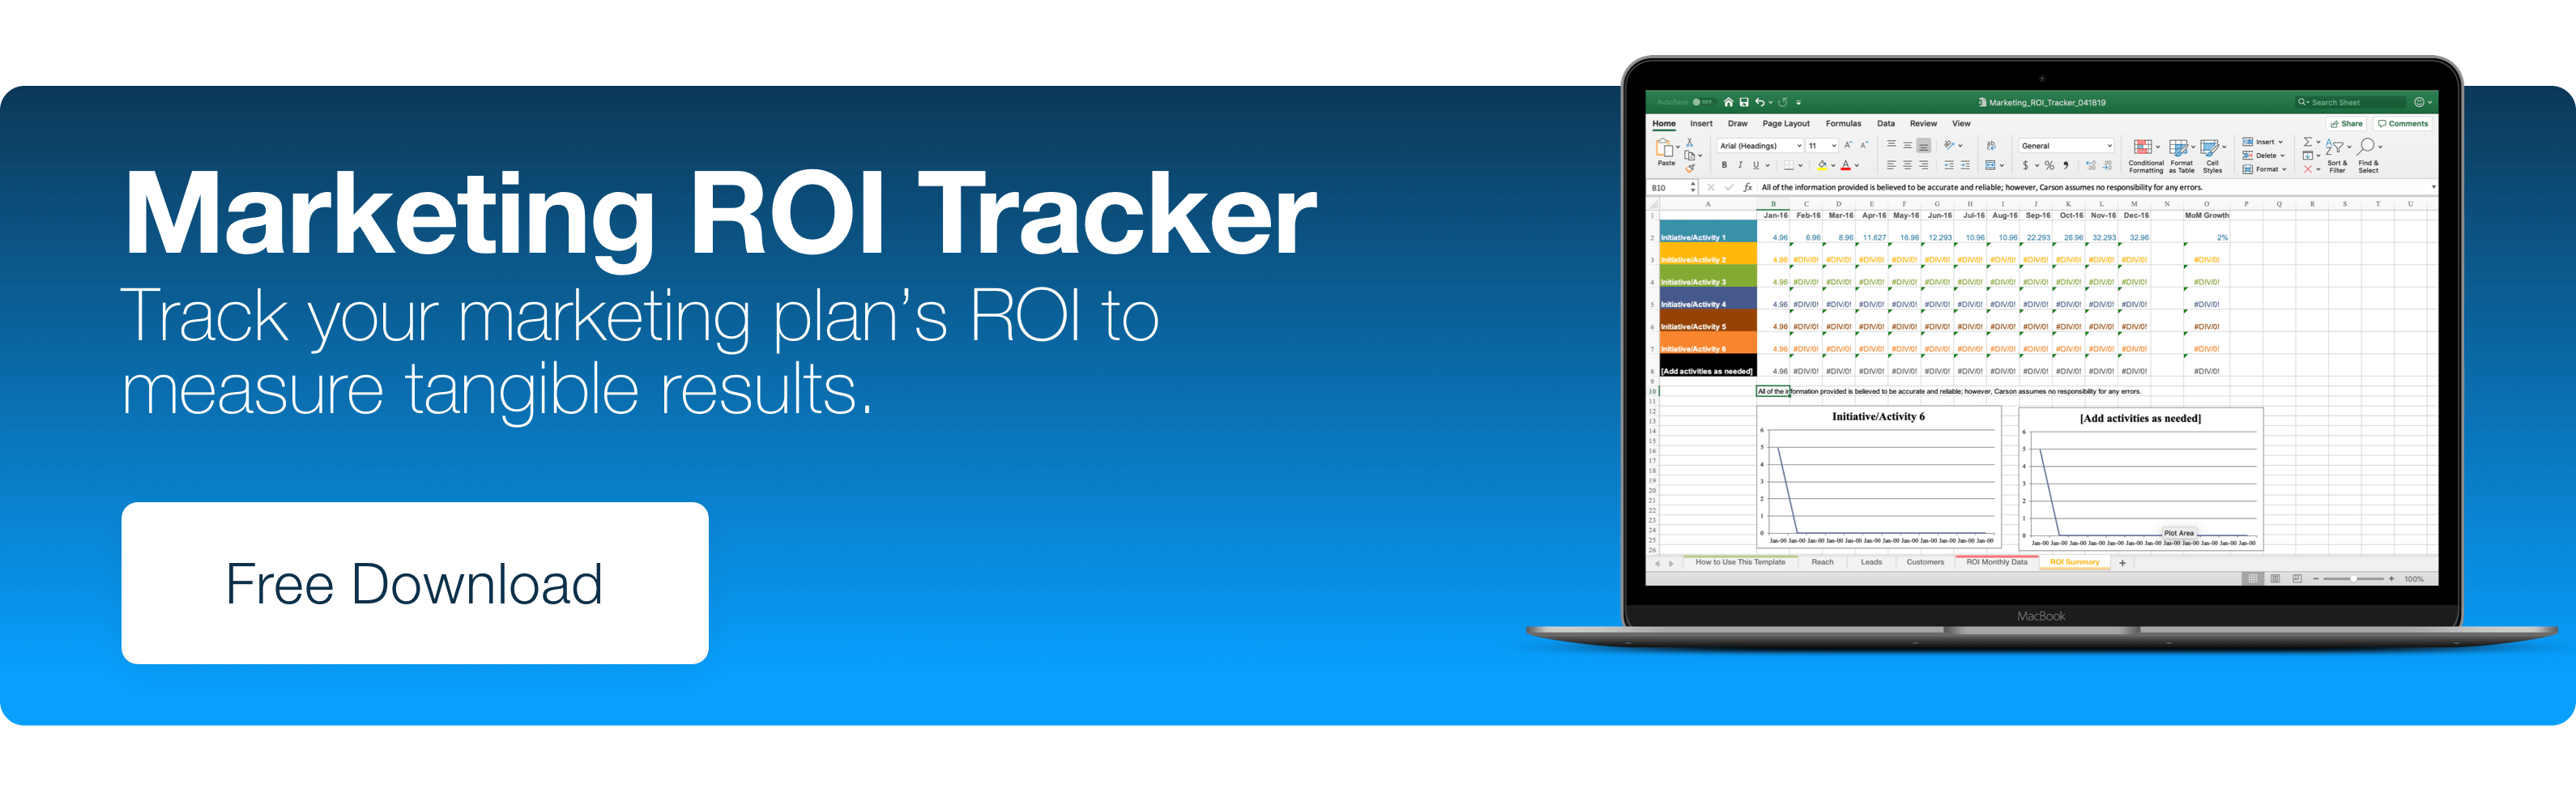 Marketing ROI Tracker. Track your marketing plan's ROI to measure tangible results. Free Download